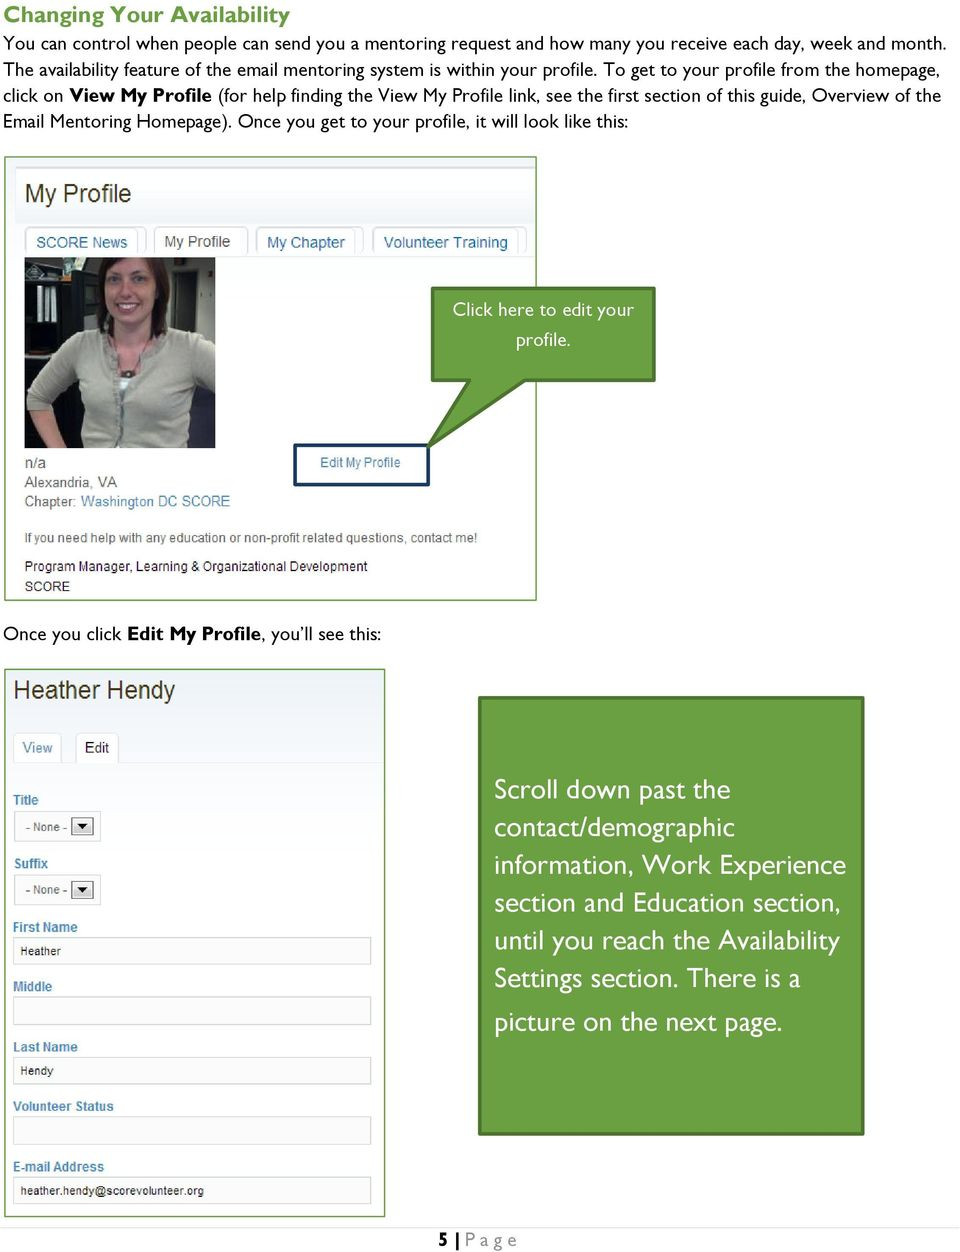 To get to your profile from the homepage, click on View My Profile (for help finding the View My Profile link, see the first section of this guide, Overview of the Email Mentoring